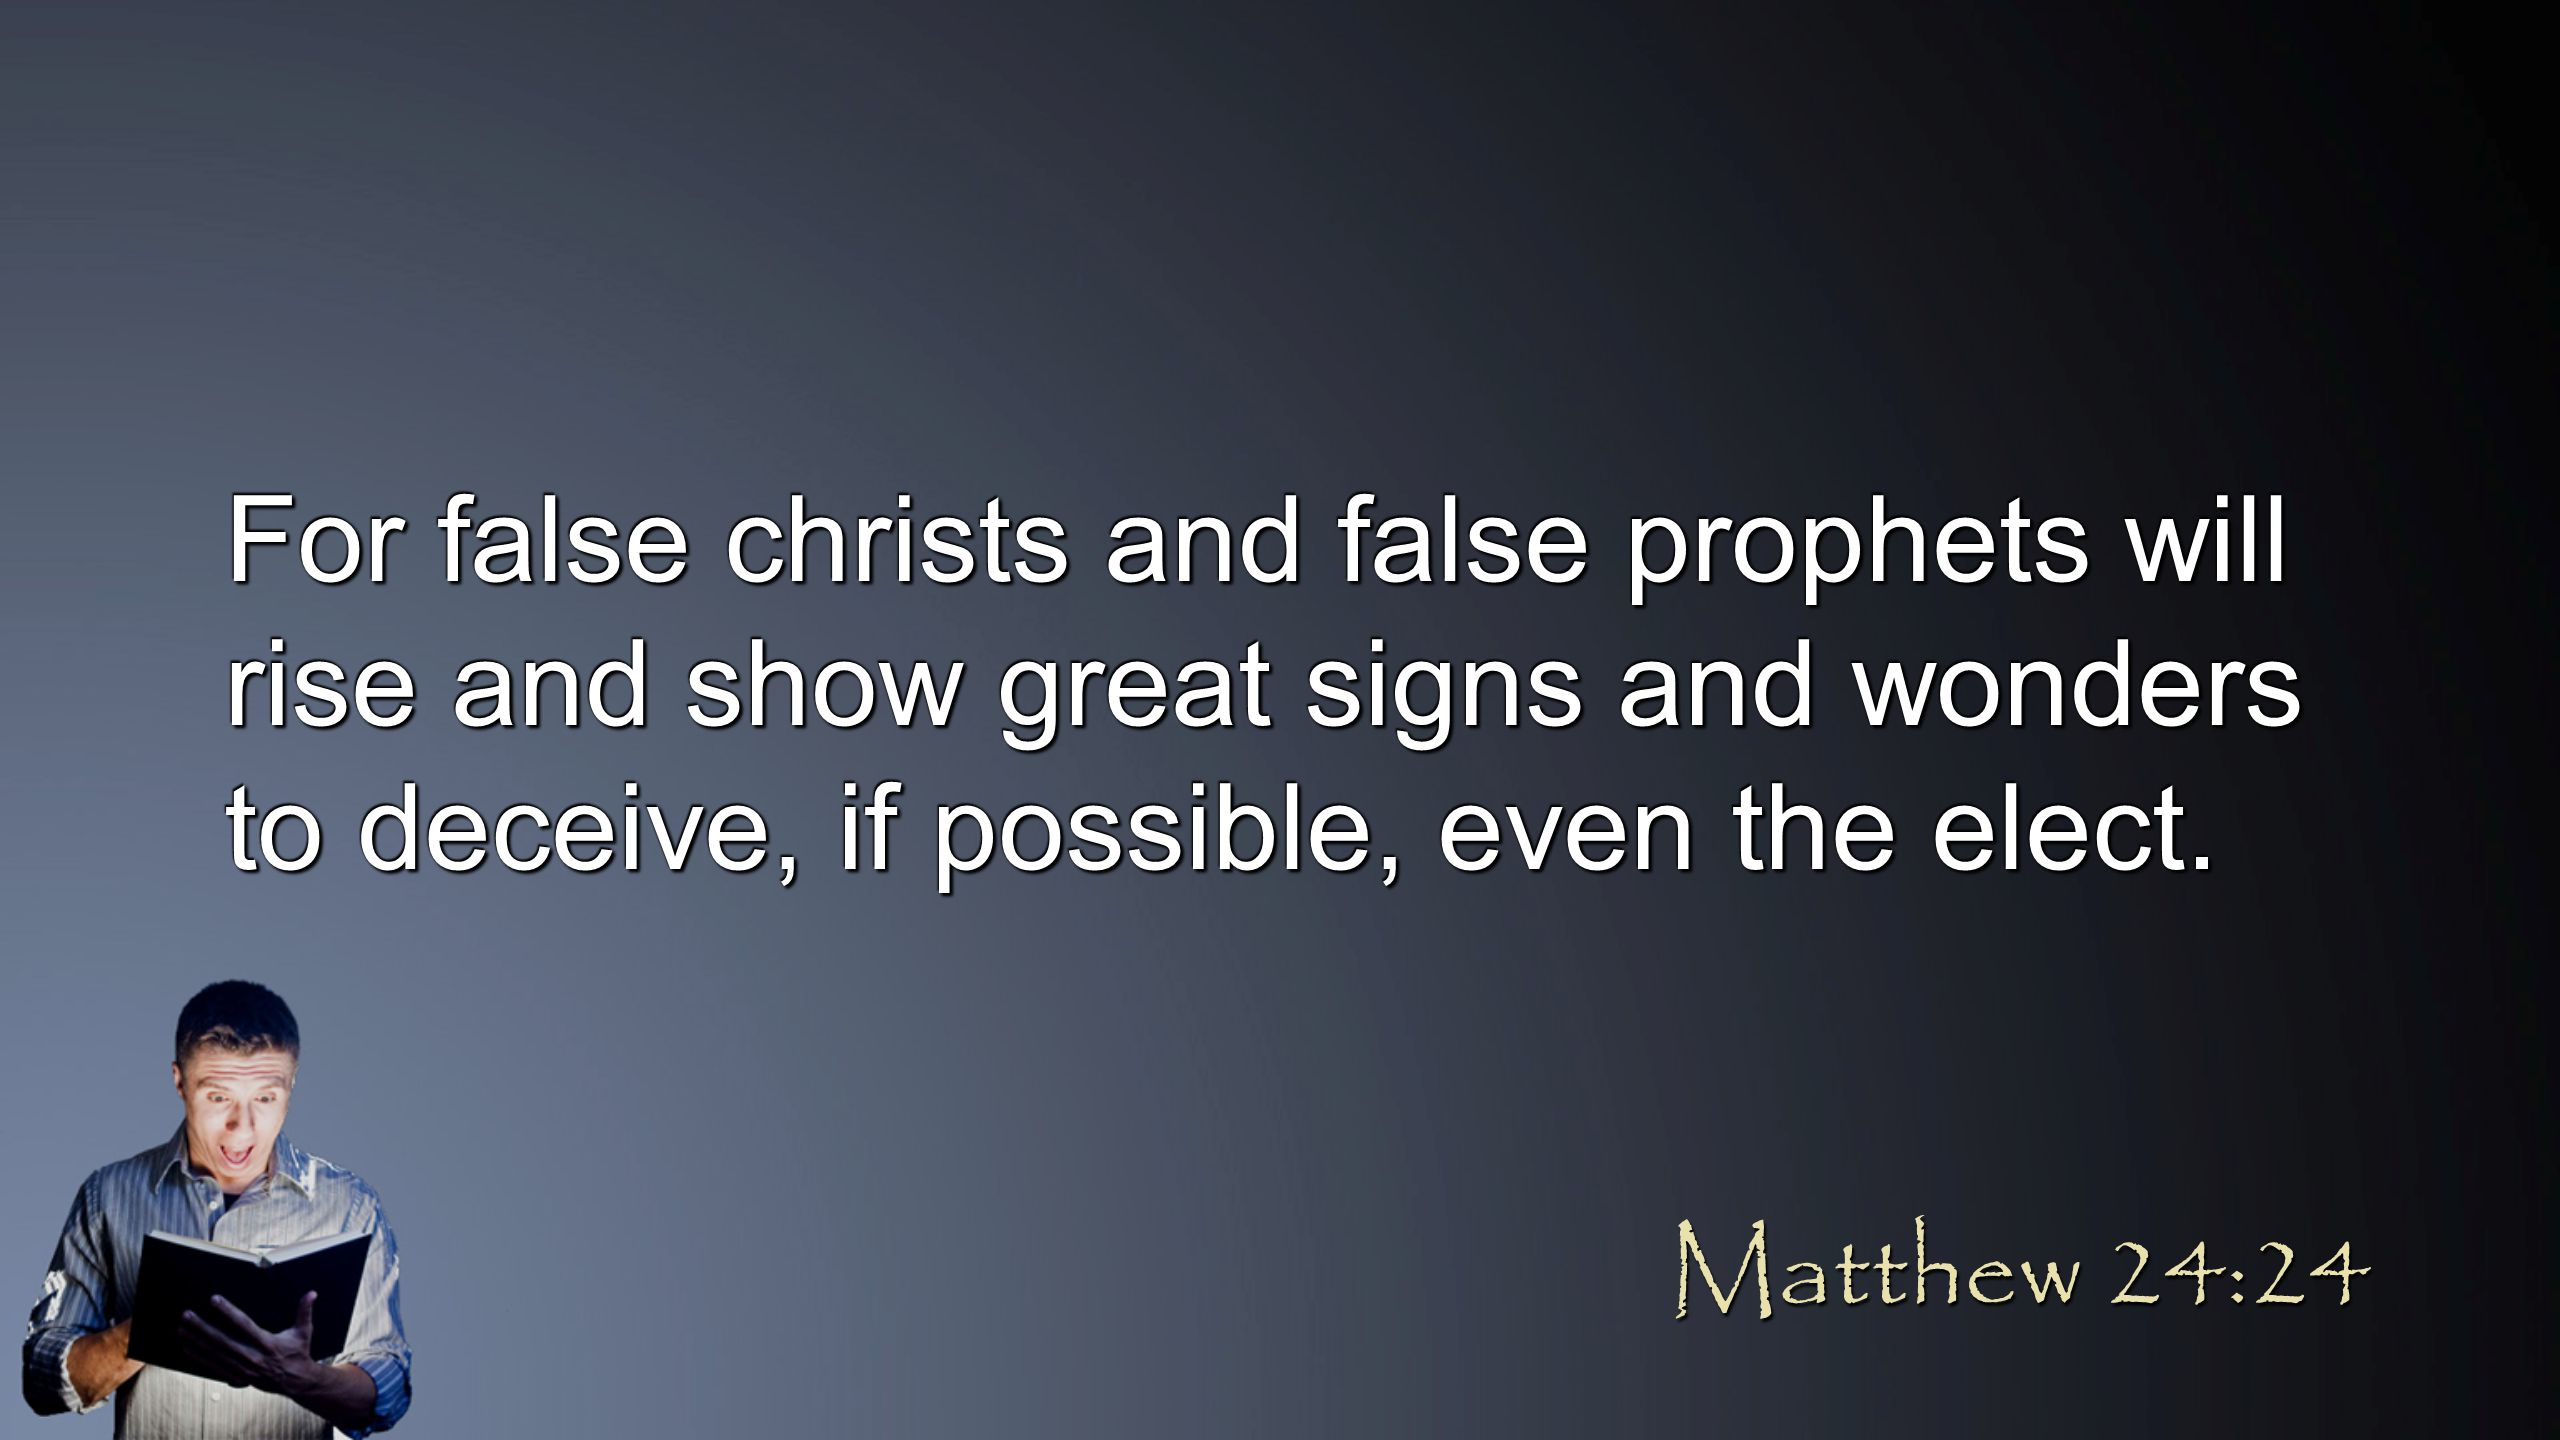 For false christs and false prophets will rise and show great signs and wonders to deceive, if possible, even the elect. Matthew 24:24